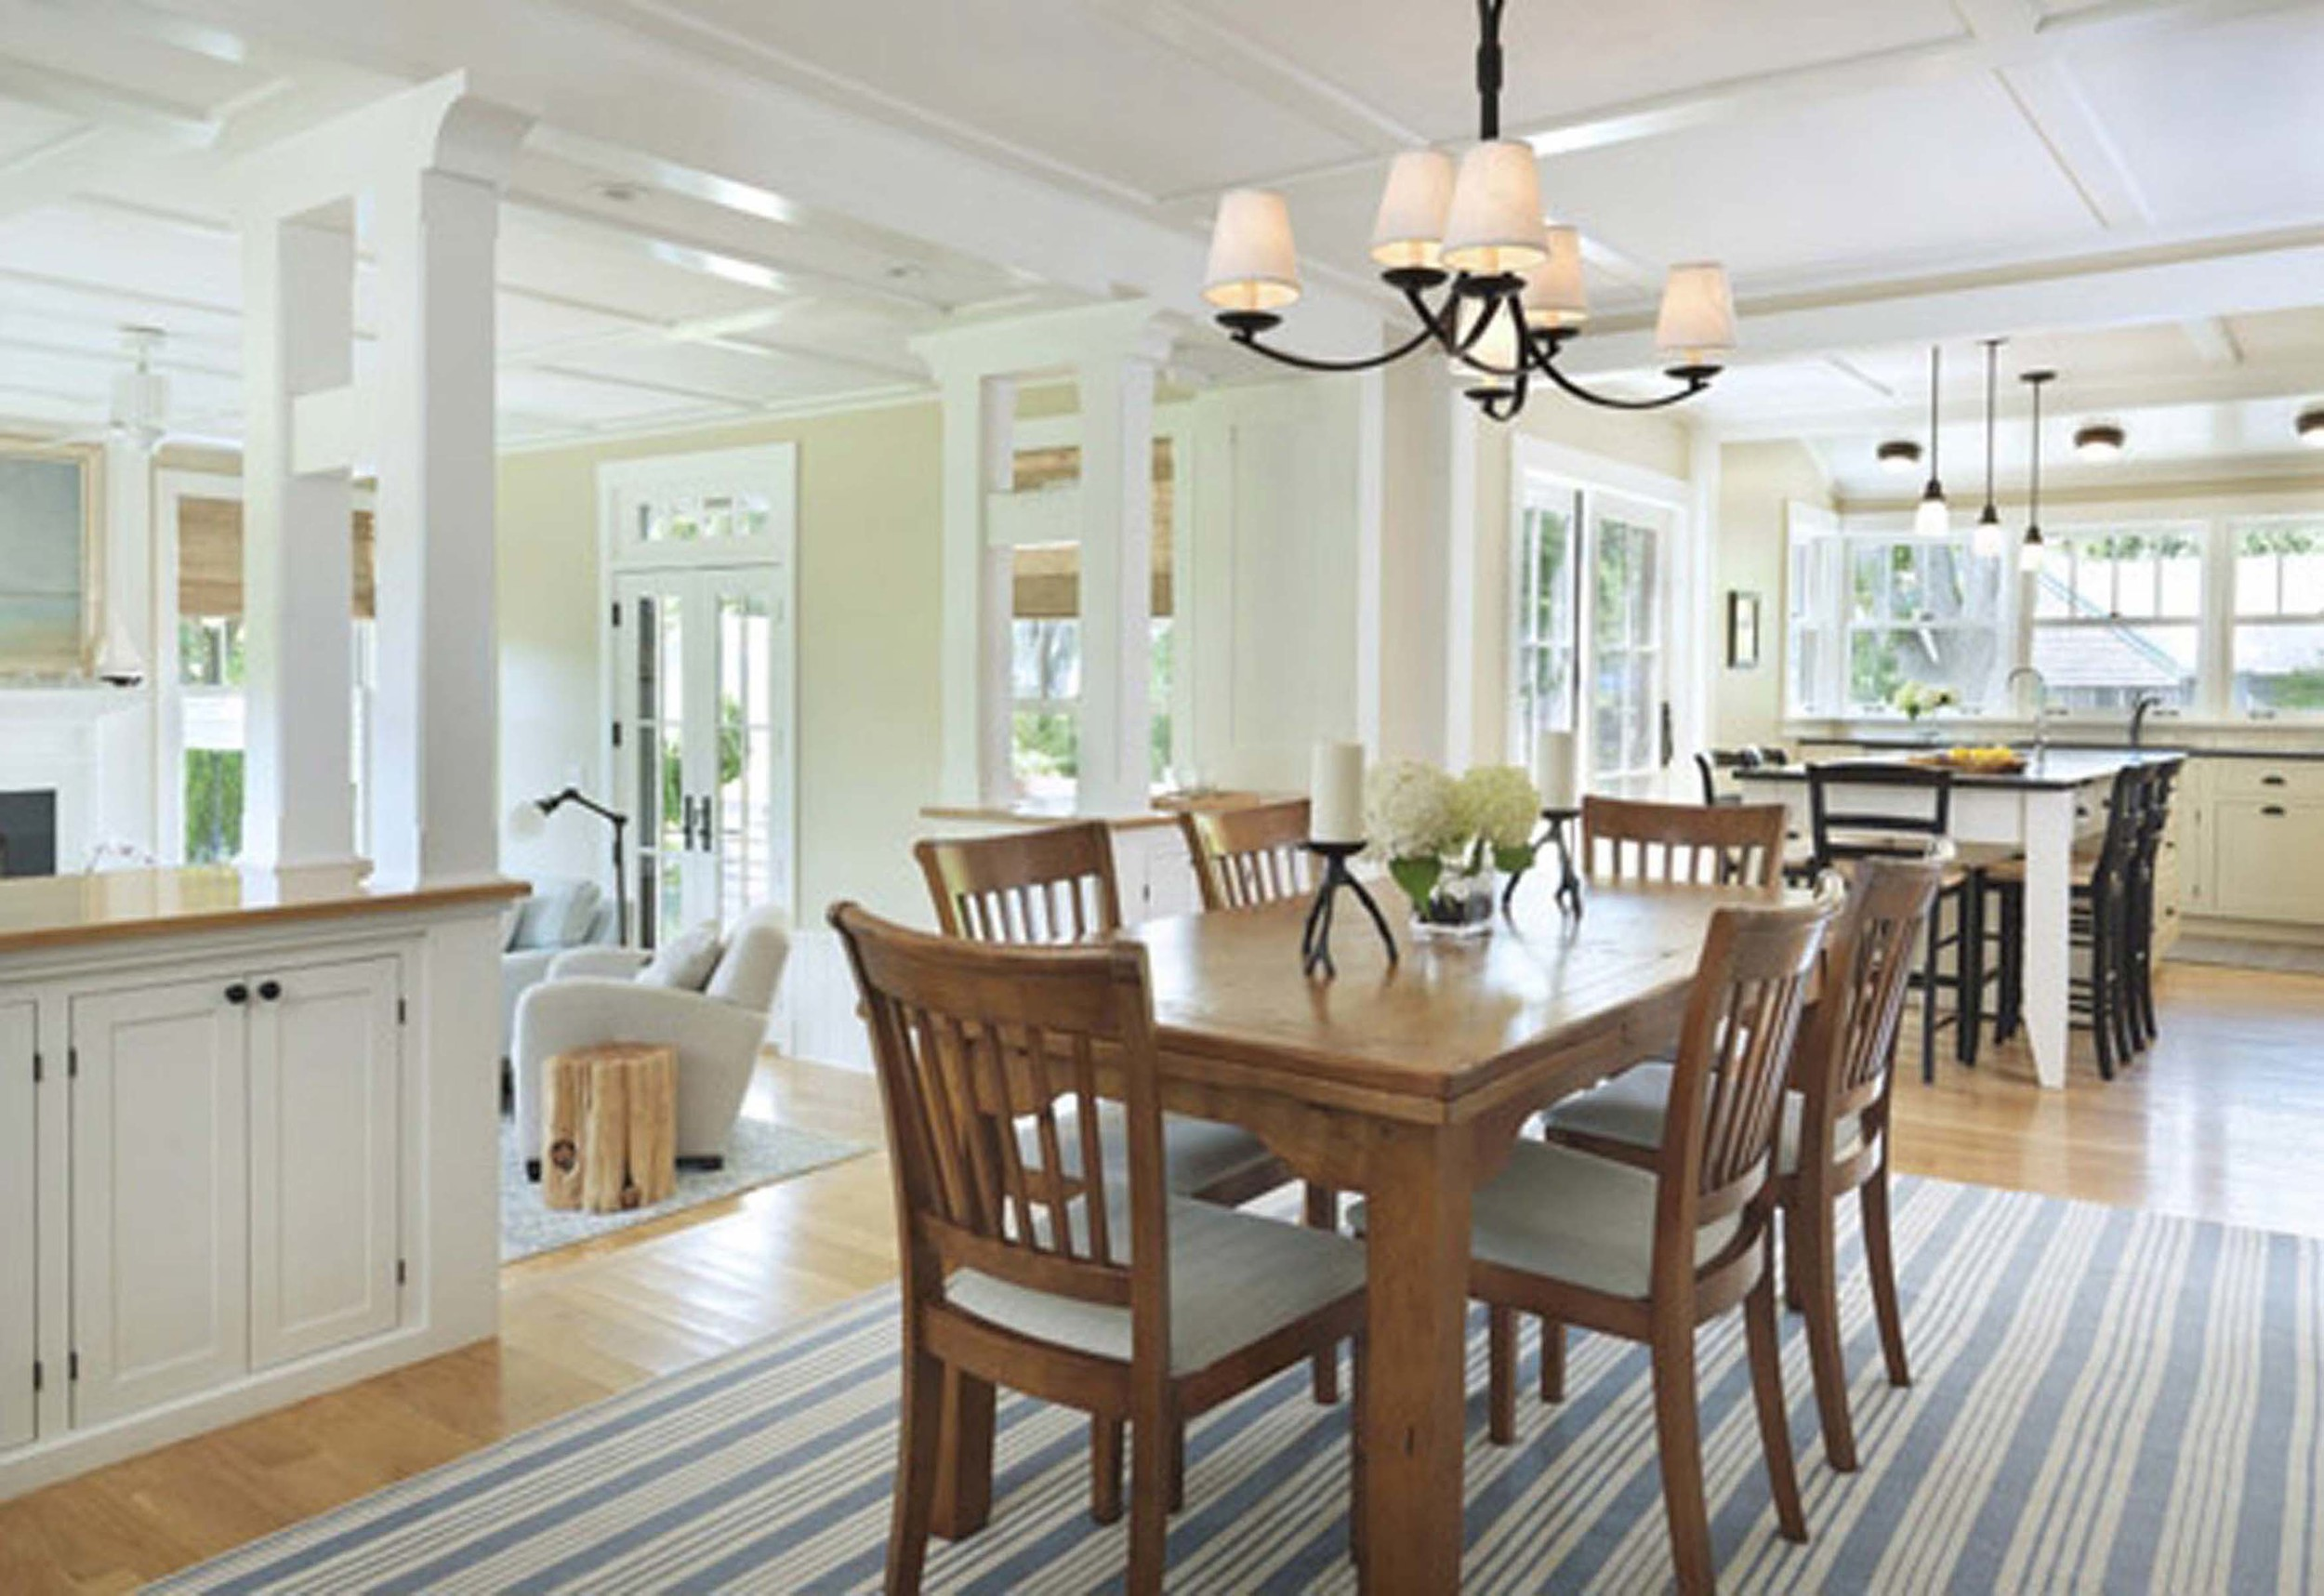 Powers Residence Remodel, Interior